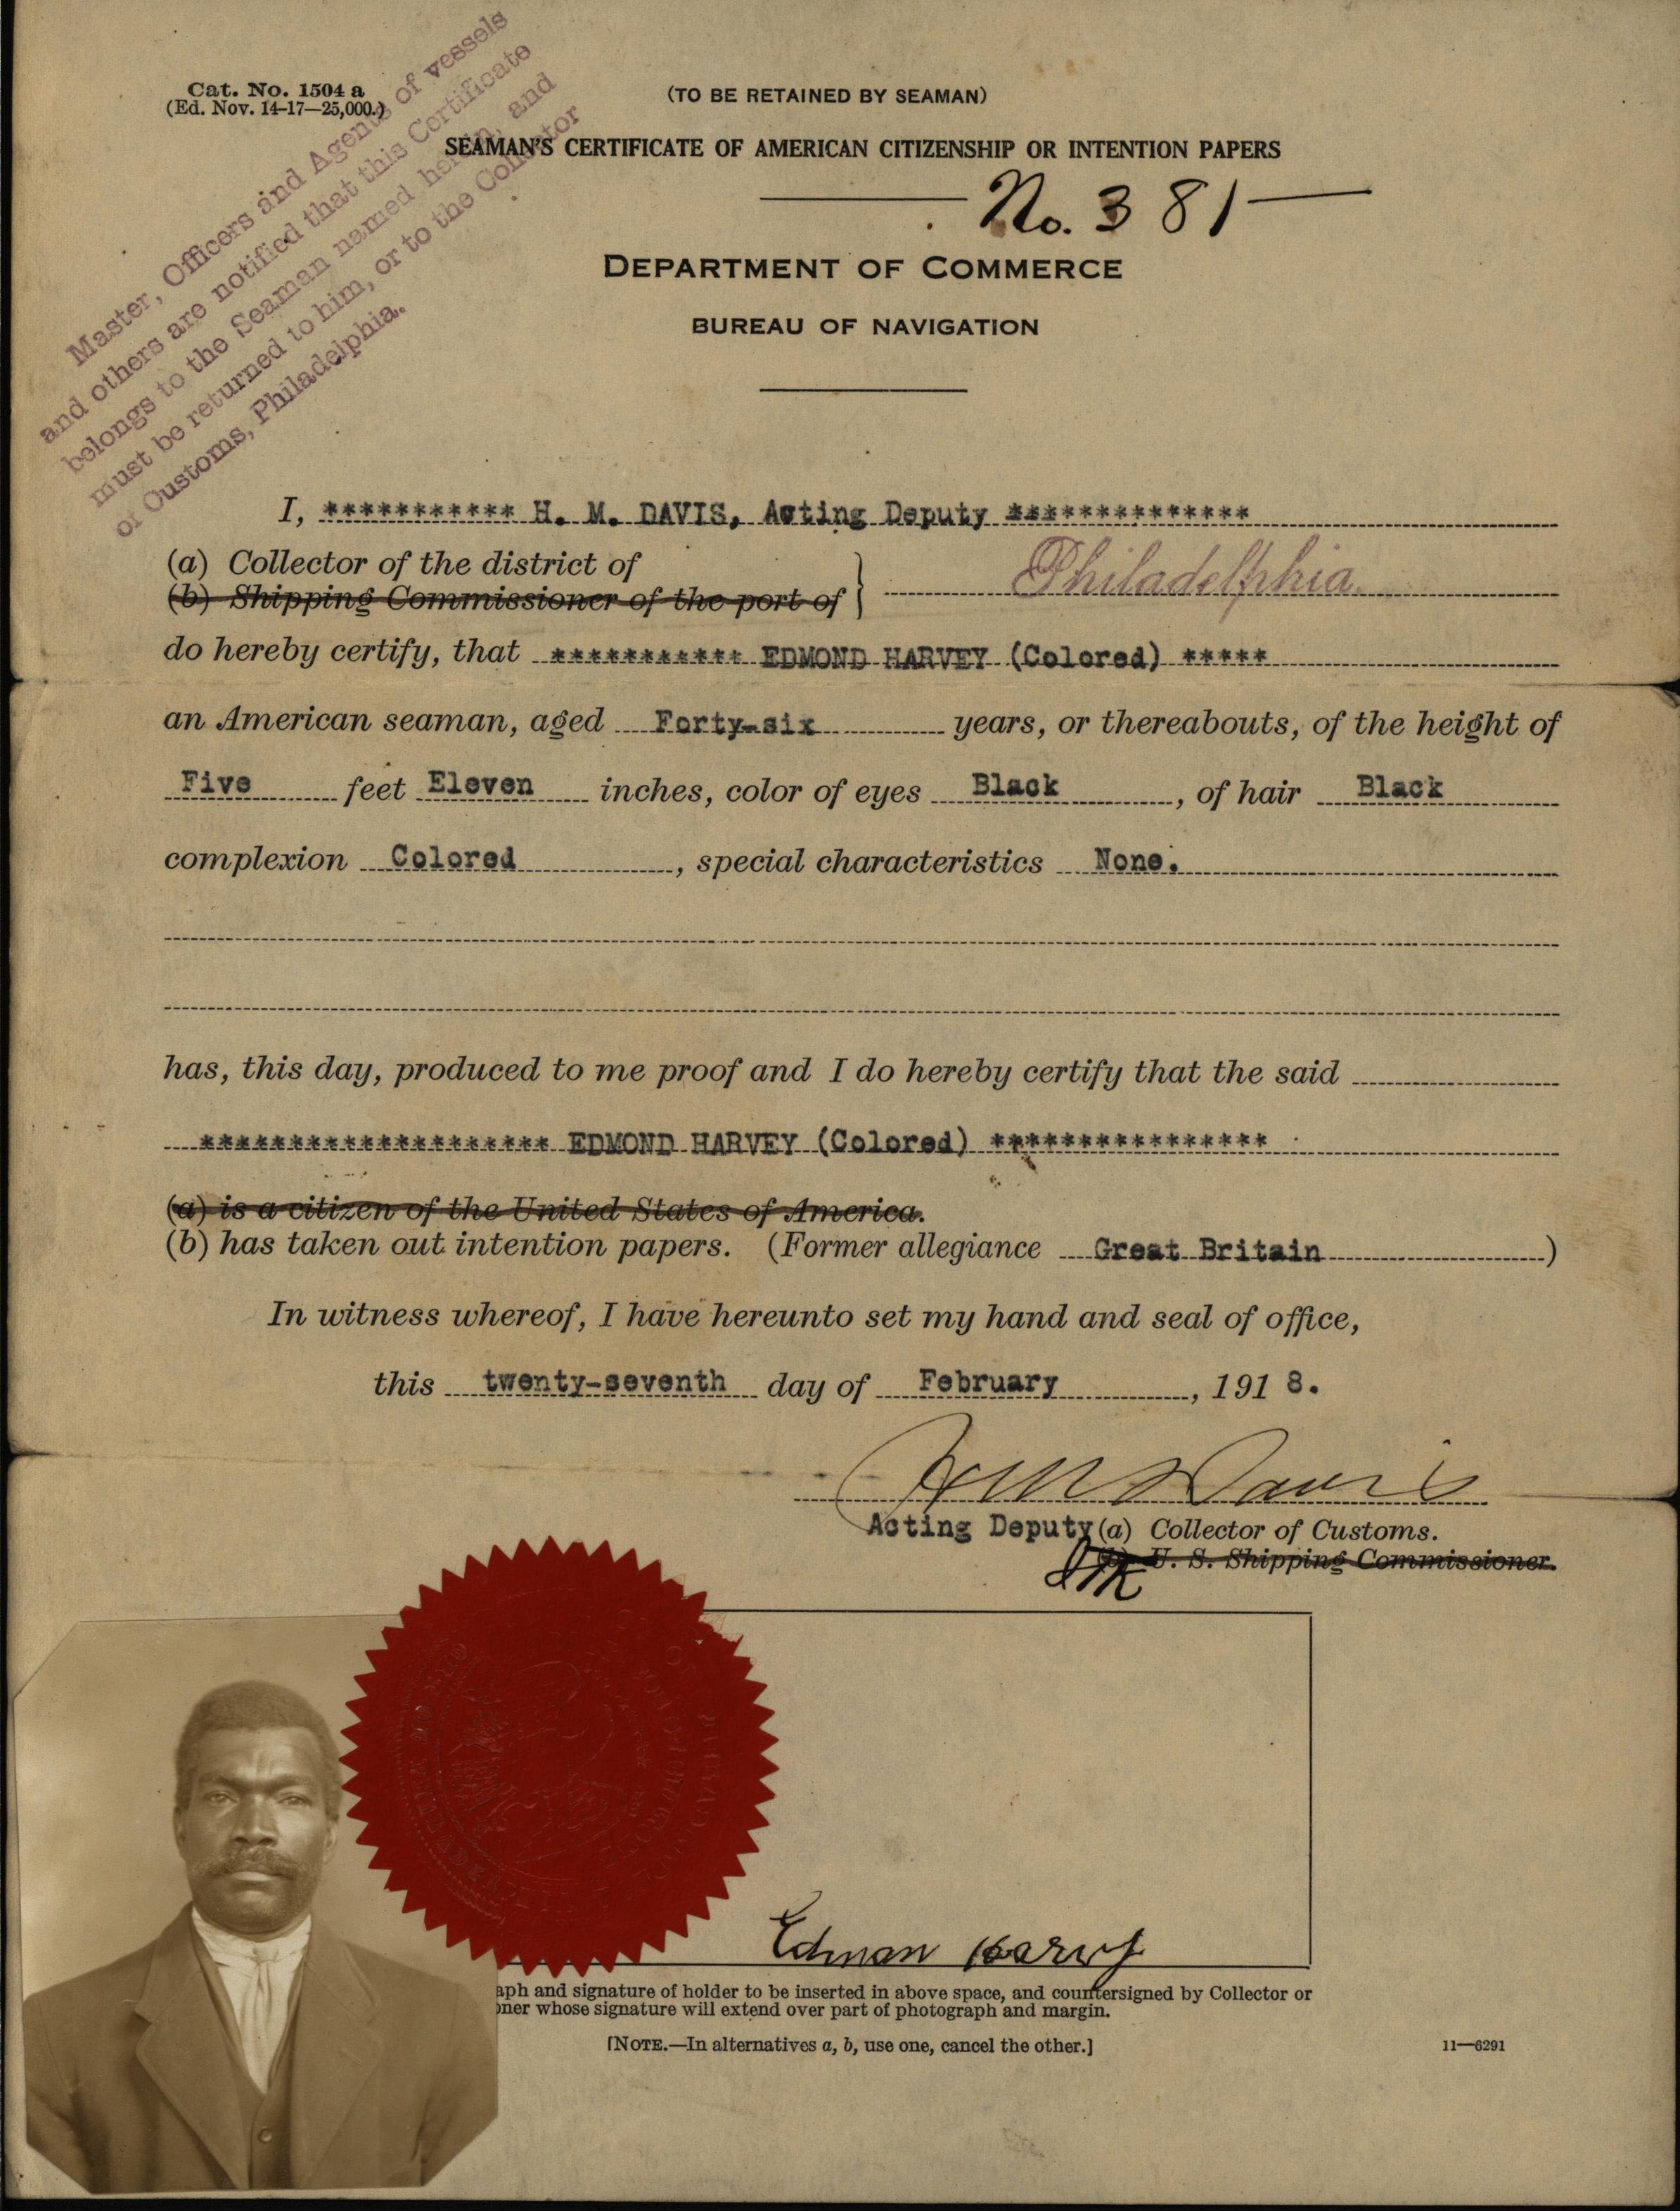 Edmond Harvey, seaman's certificate of intention papers, 1918